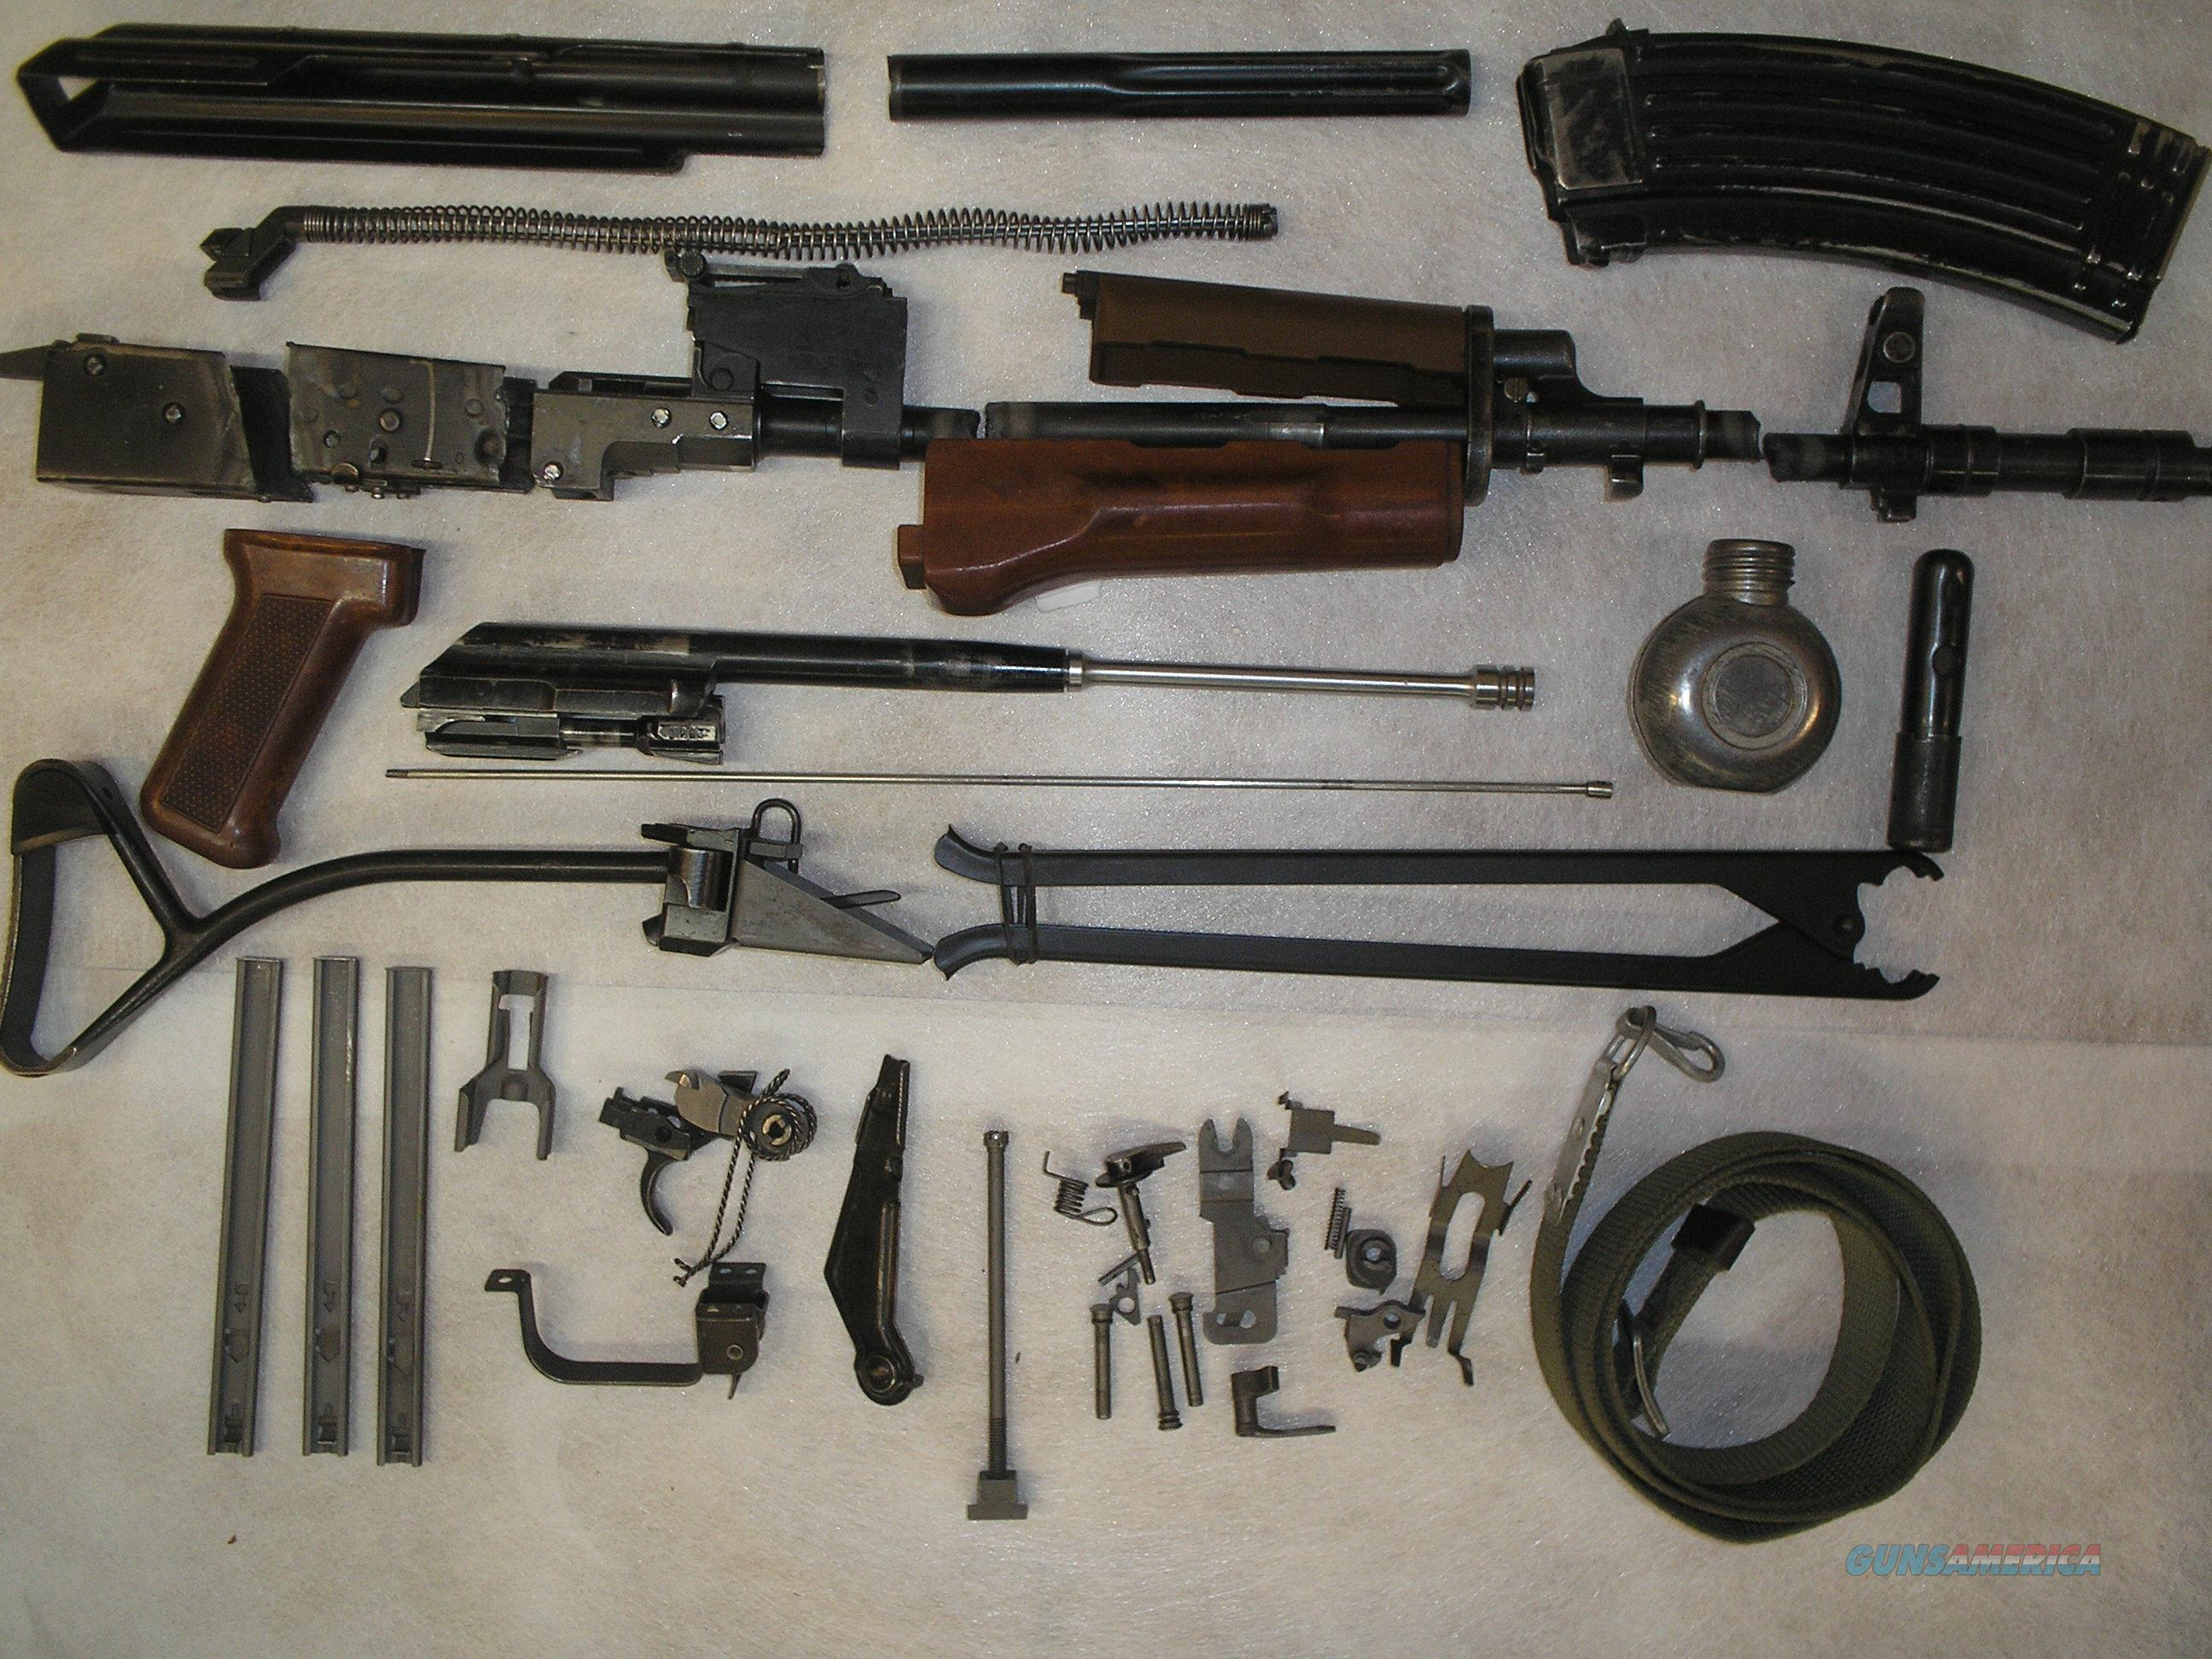 TANTAL 88 AK-74 PARTS KIT for sale